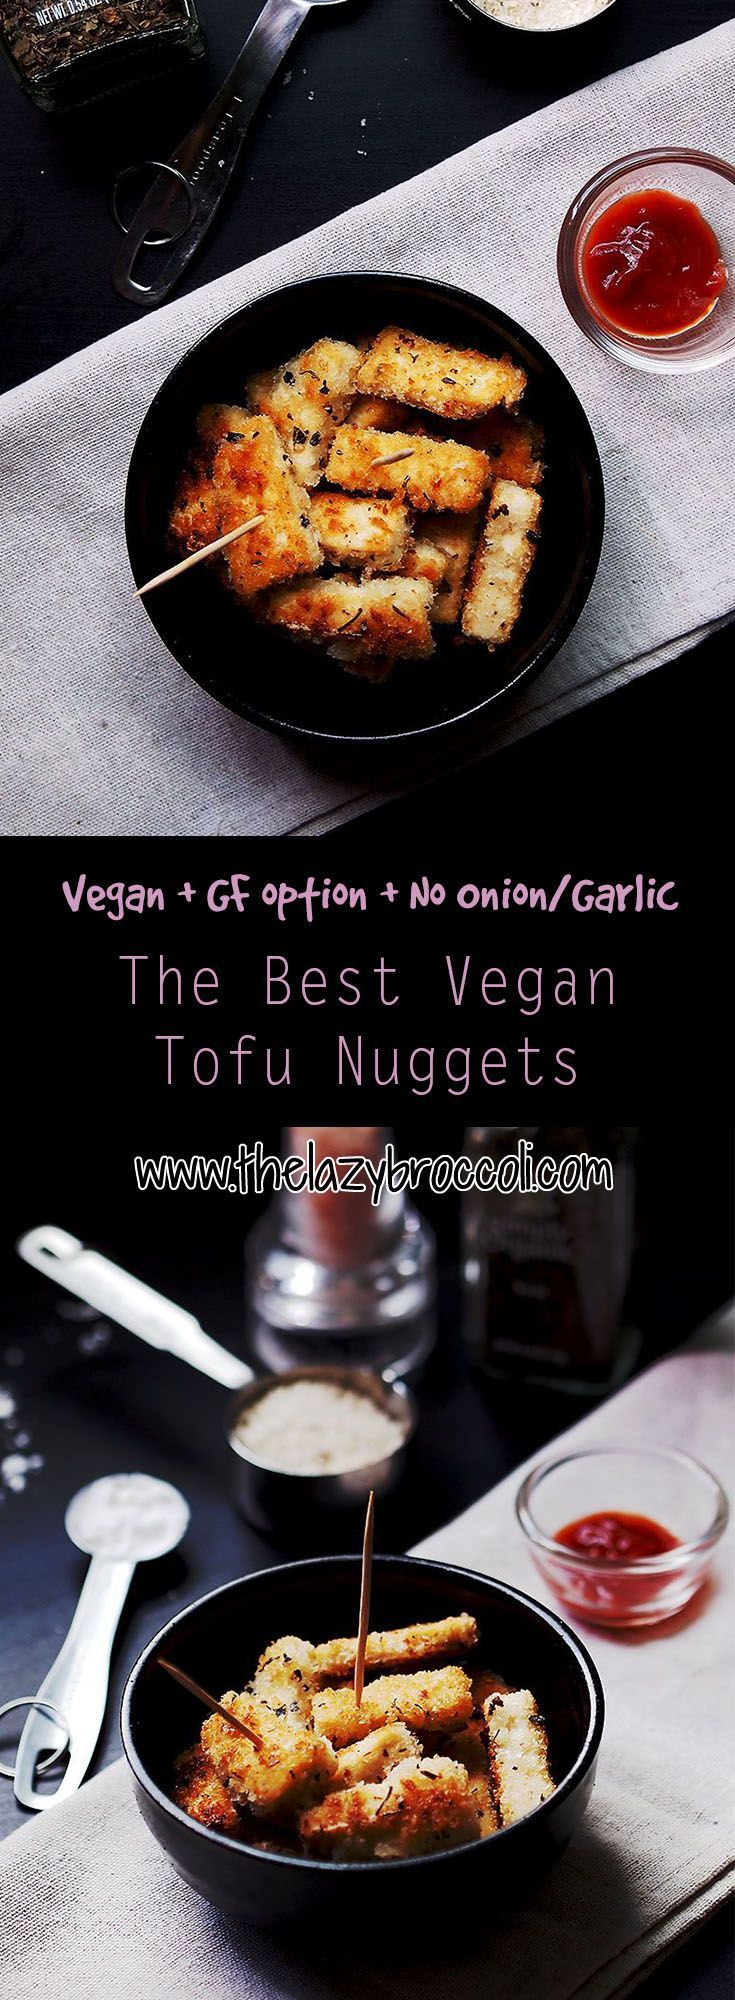 This vegan, no onion no garlic tofu nuggets is incredibly easy plus it is so addictive! It's the perfect snack for lazy people and it's so good, even not vegans will love it! For gluten-free version, just get gluten-free panko and voila!